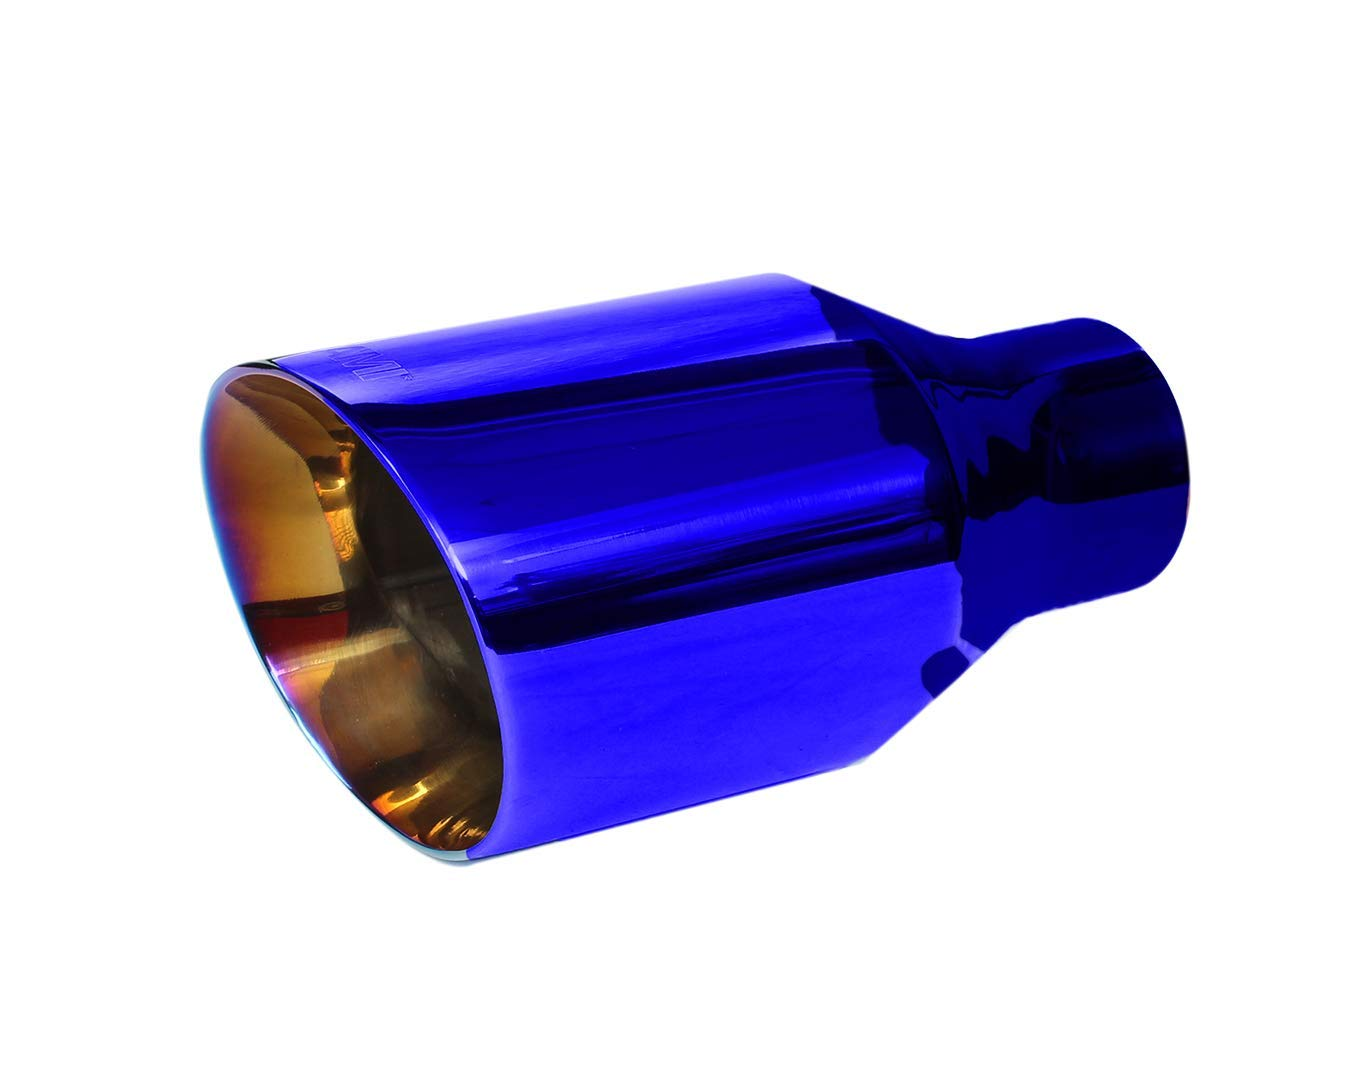 """Oval Tip 2.5/"""" Inlet 5.5/"""" Outlet Chrome N1 Exhaust Muffler Stainless Steel"""